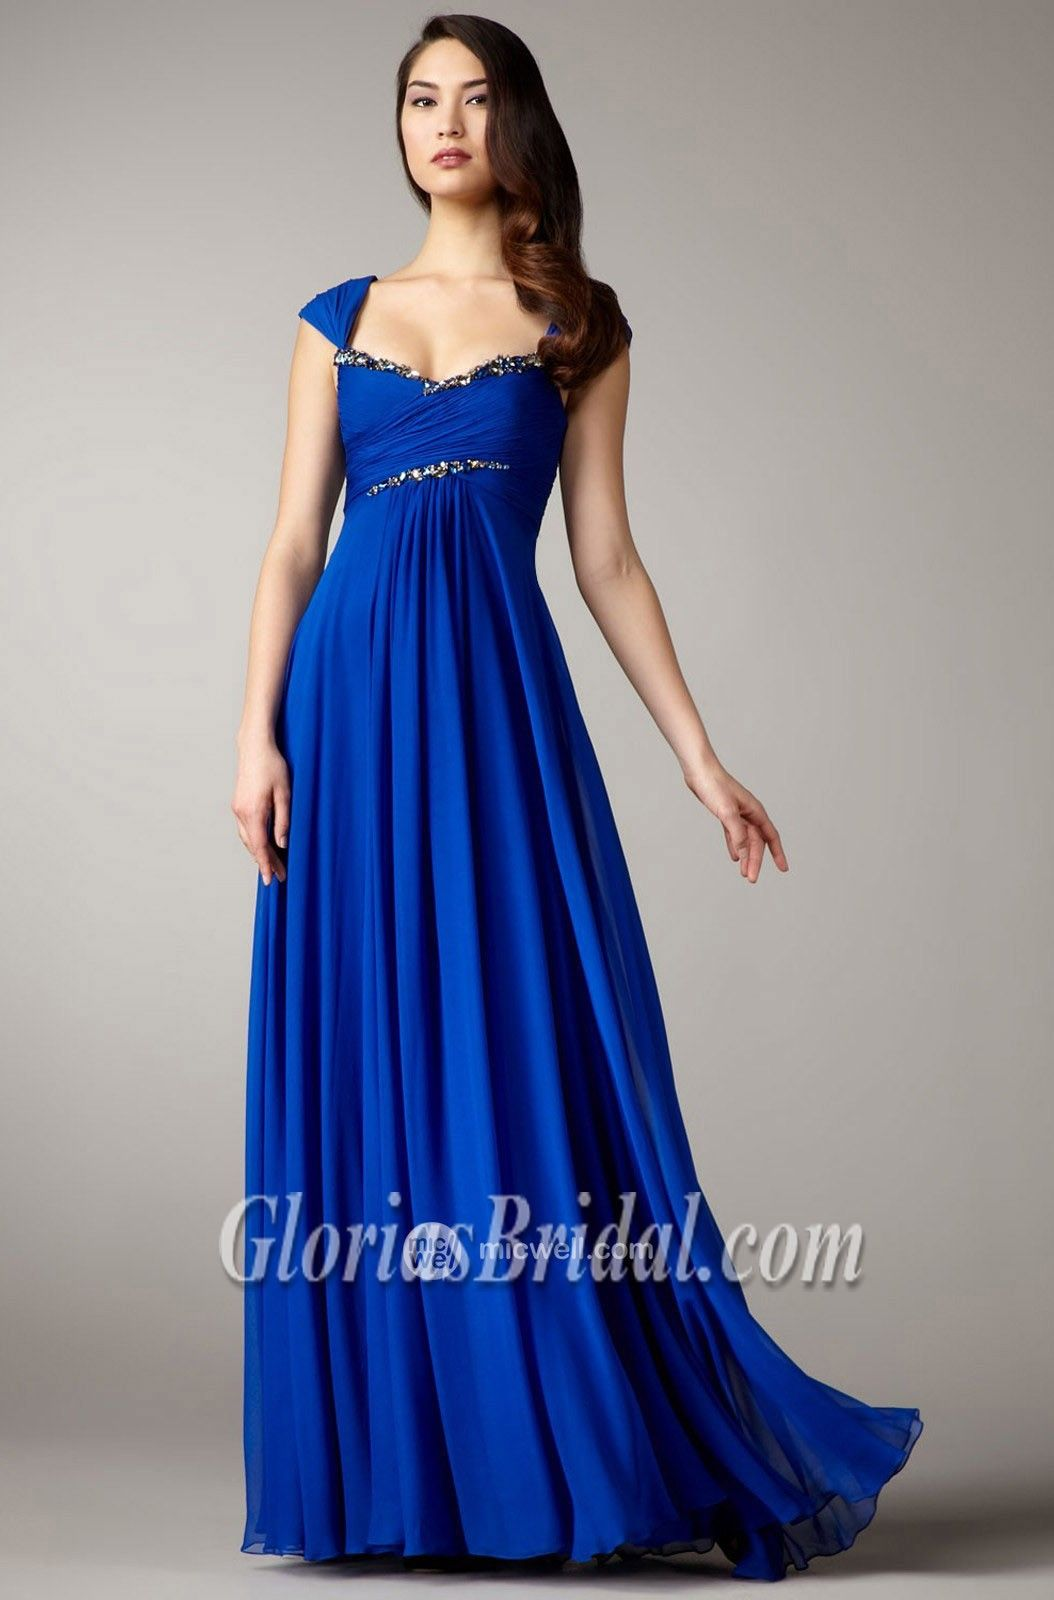 Reception dress big day ideas pinterest prom royal blue and